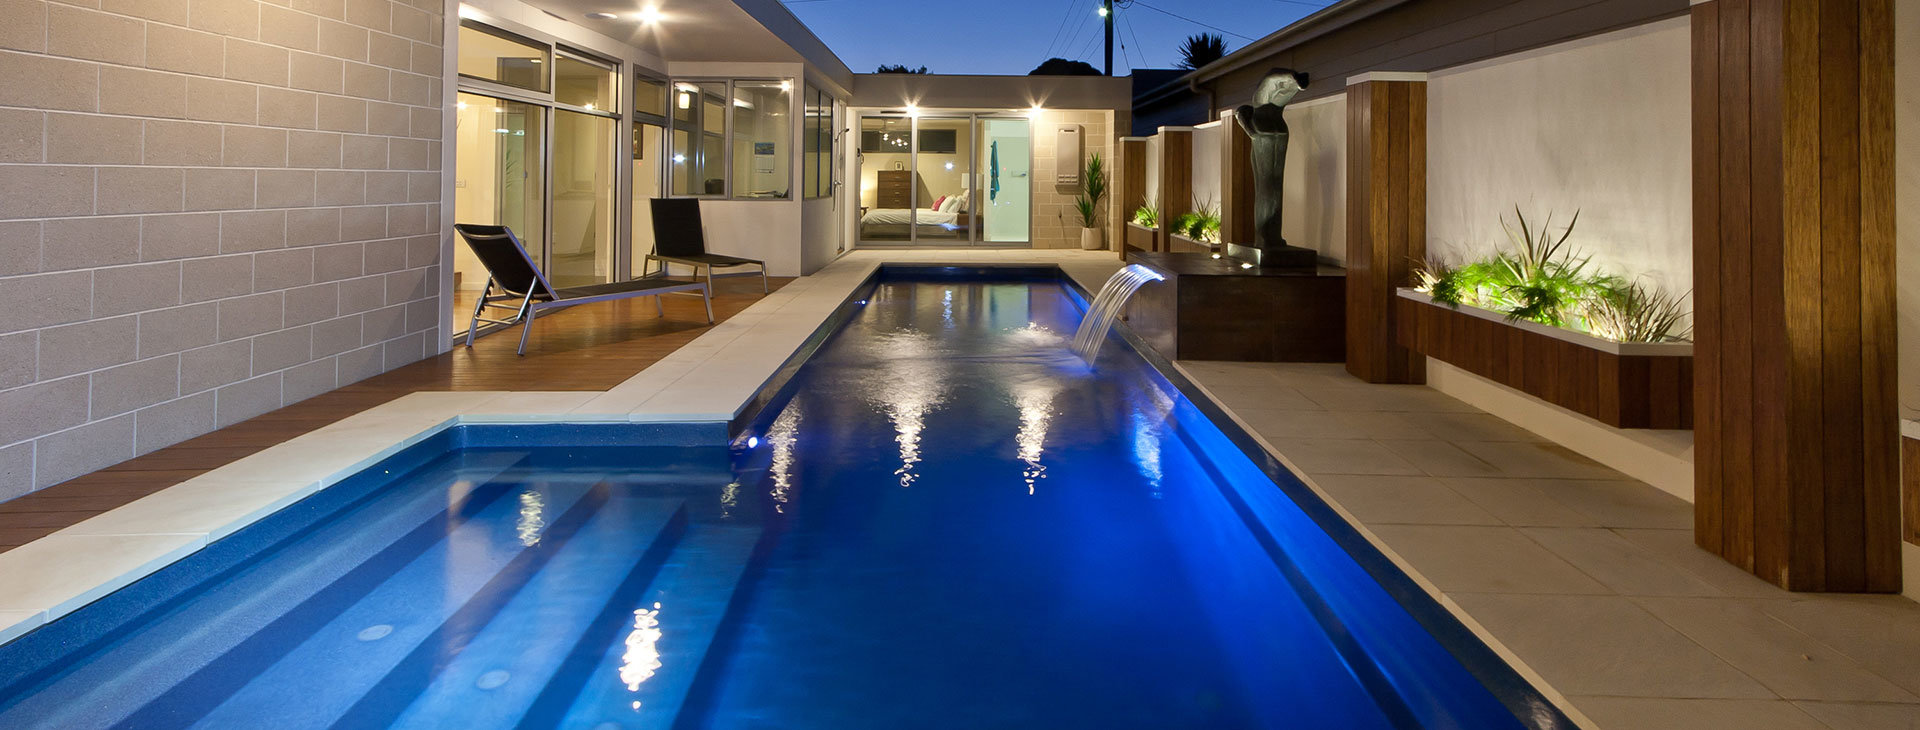 Compass Pools Australia Pool Builders South Australia Installation 3